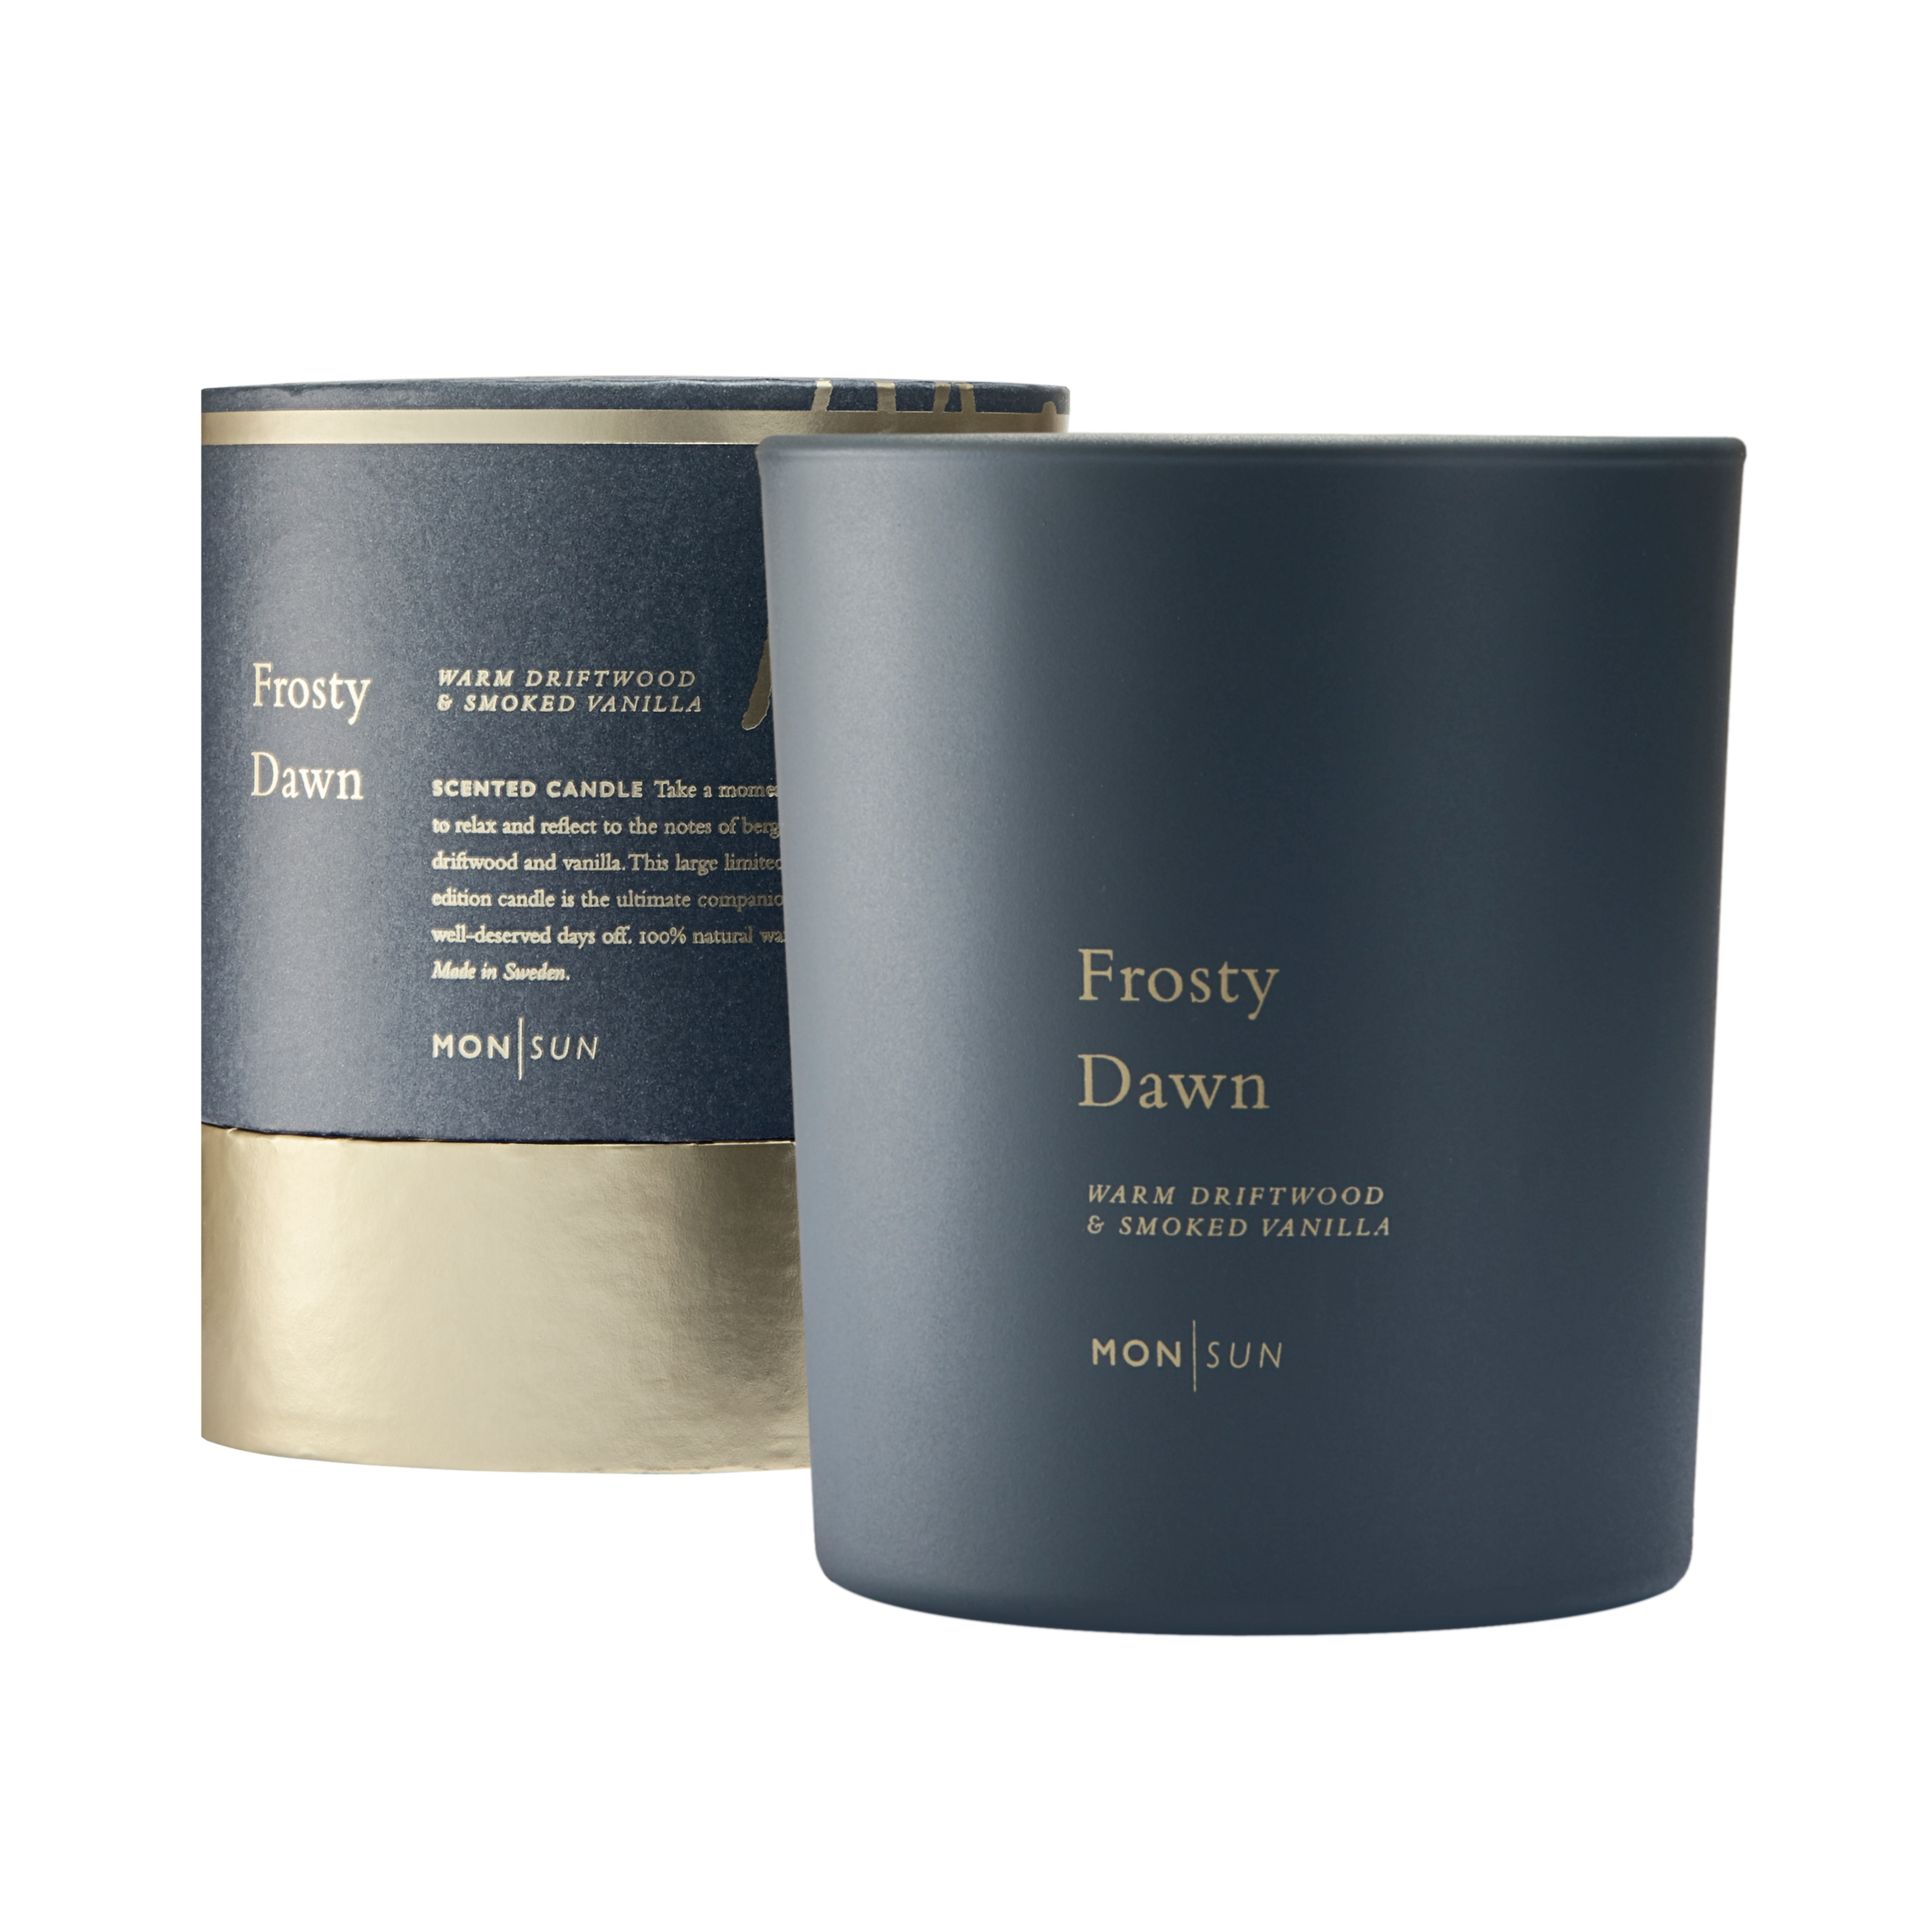 Frosty Dawn Scented Candle Limited Edition